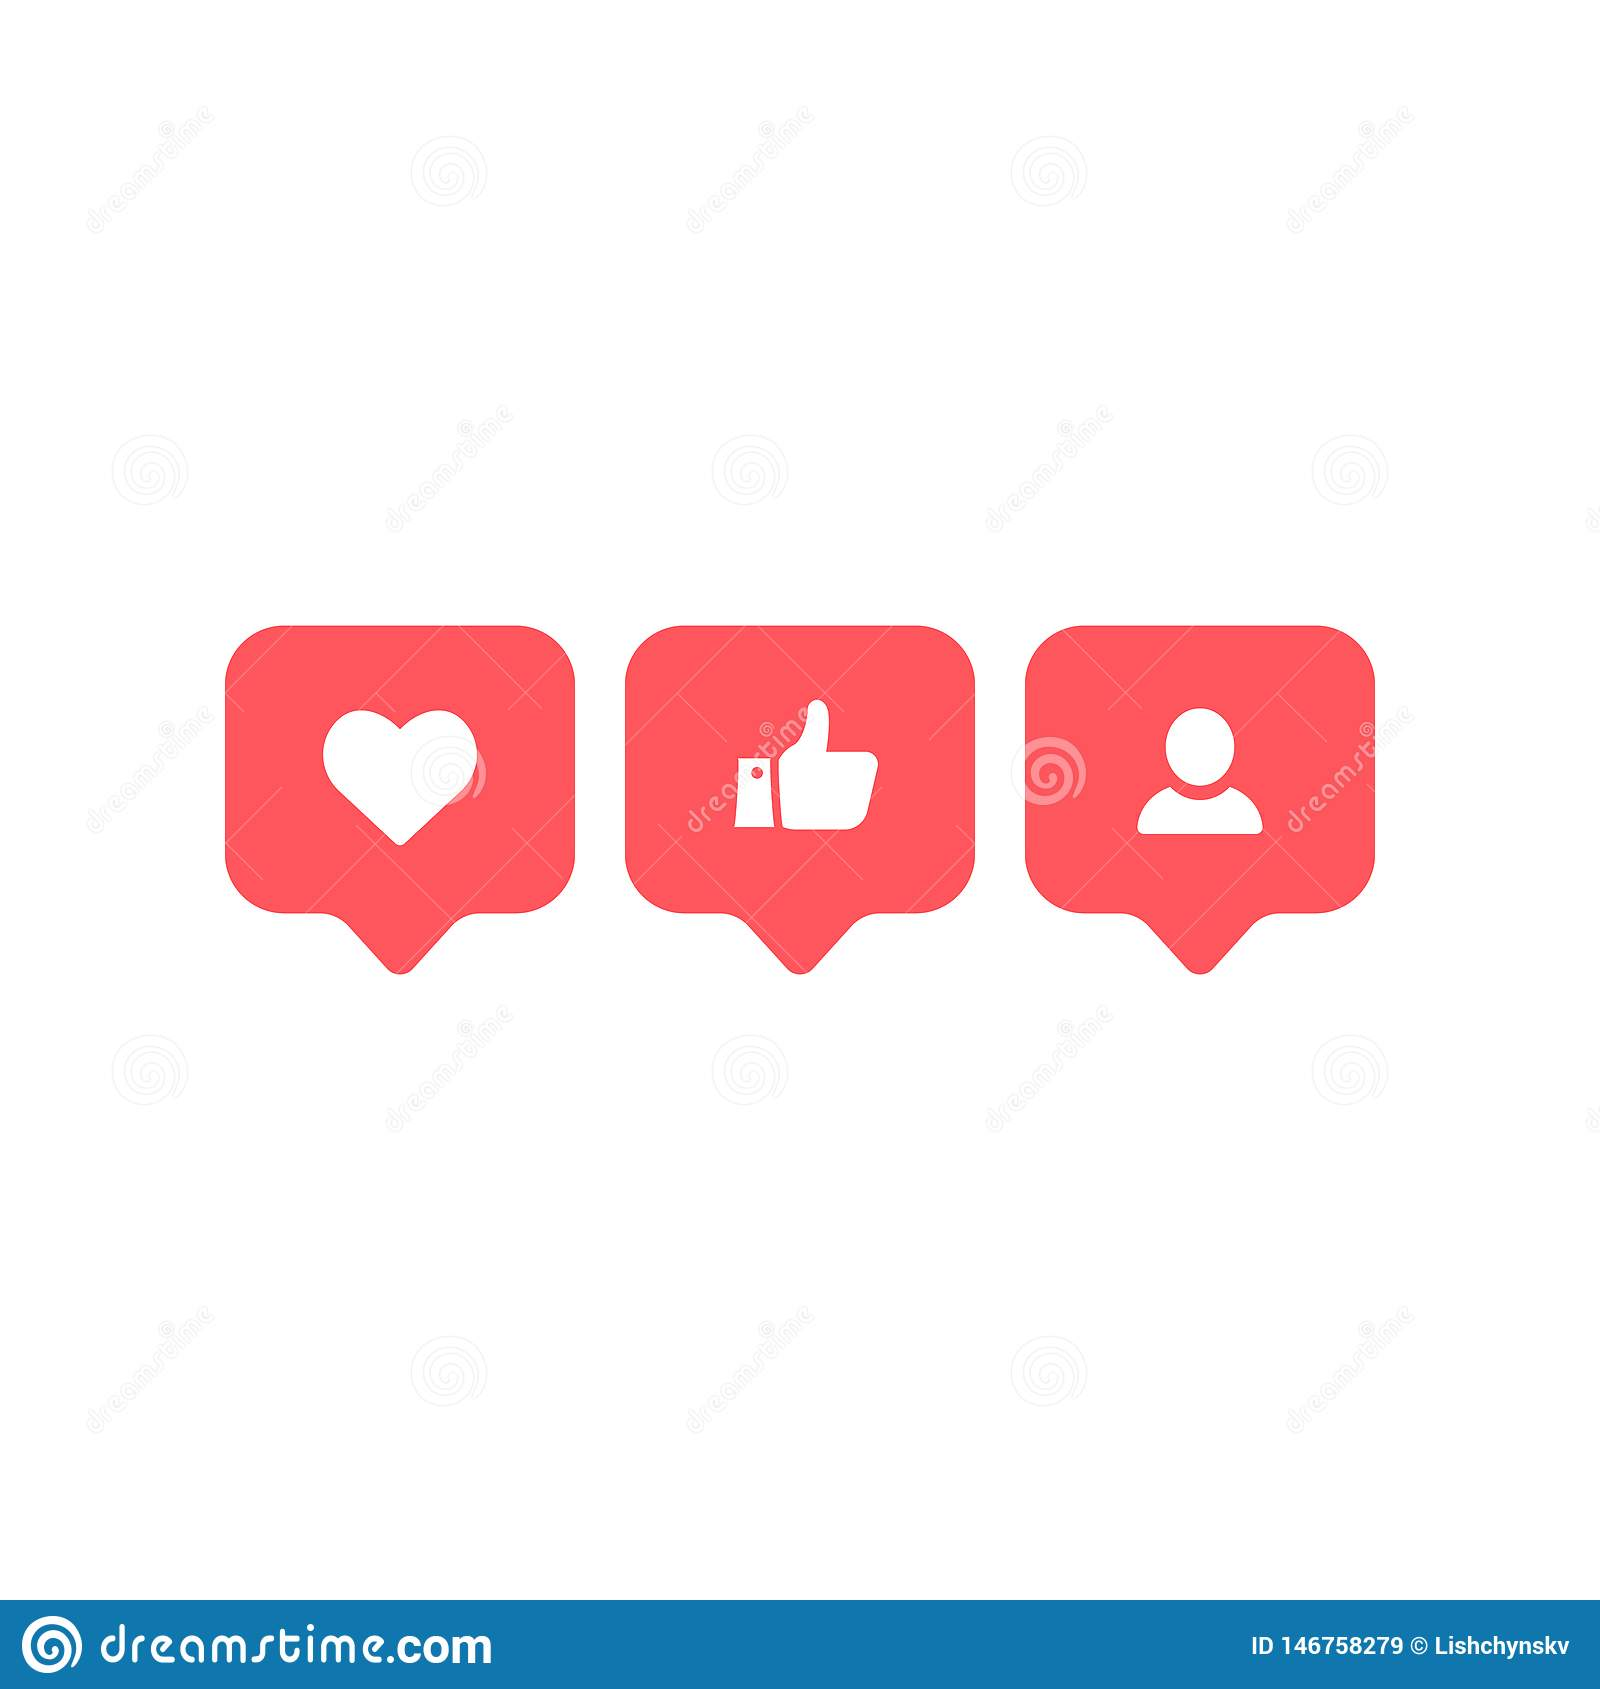 Social Media Instagram Modern Like, Follower, Red Color. Follower, Comment Button, Icon, Symbol